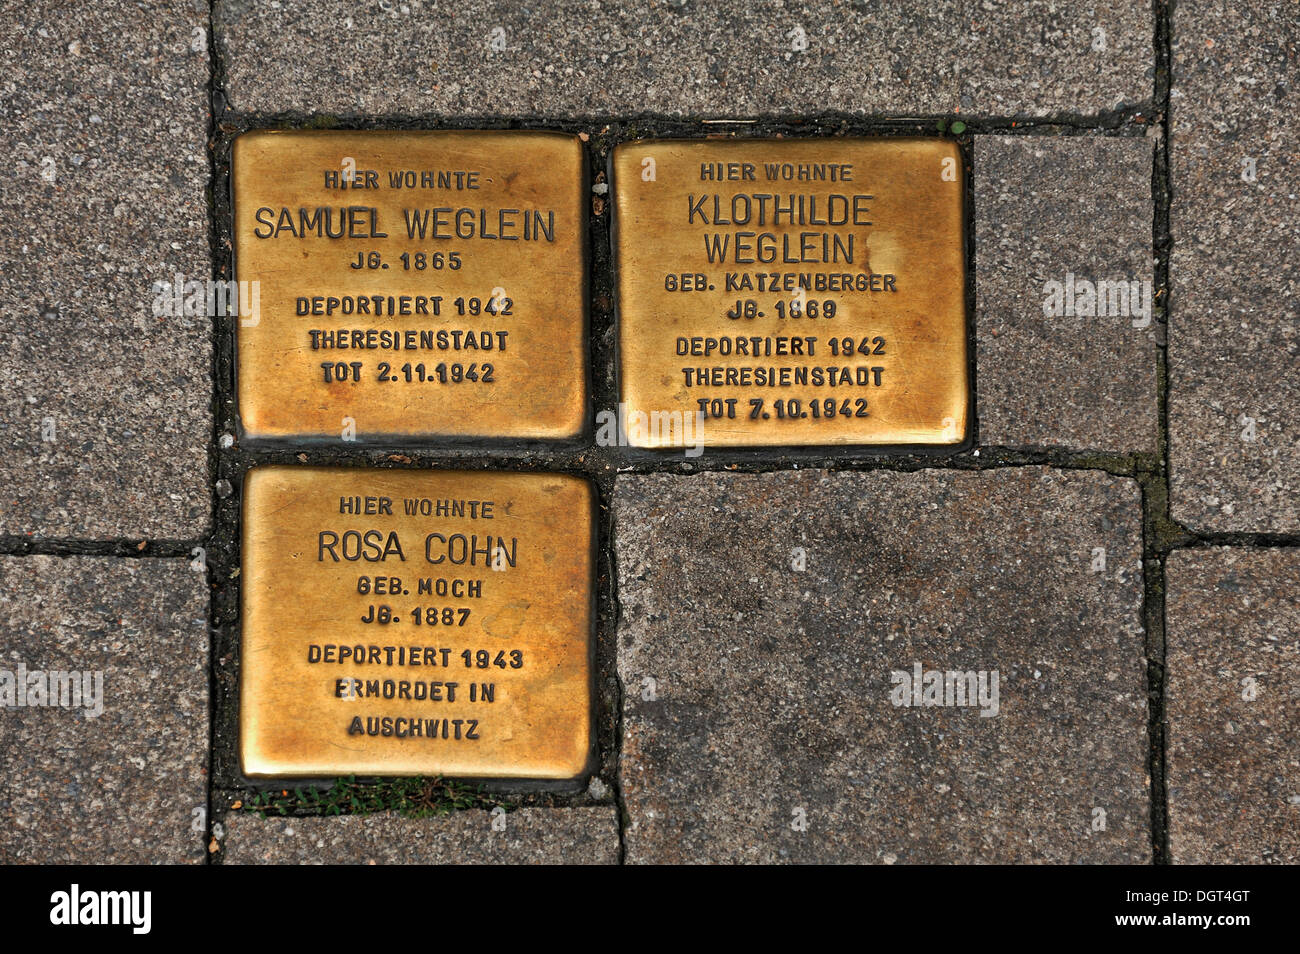 Stumbling blocks, memorial stones for deported and murdered Jews in the Third Reich, 1942-1943, main road in Erlangen Stock Photo